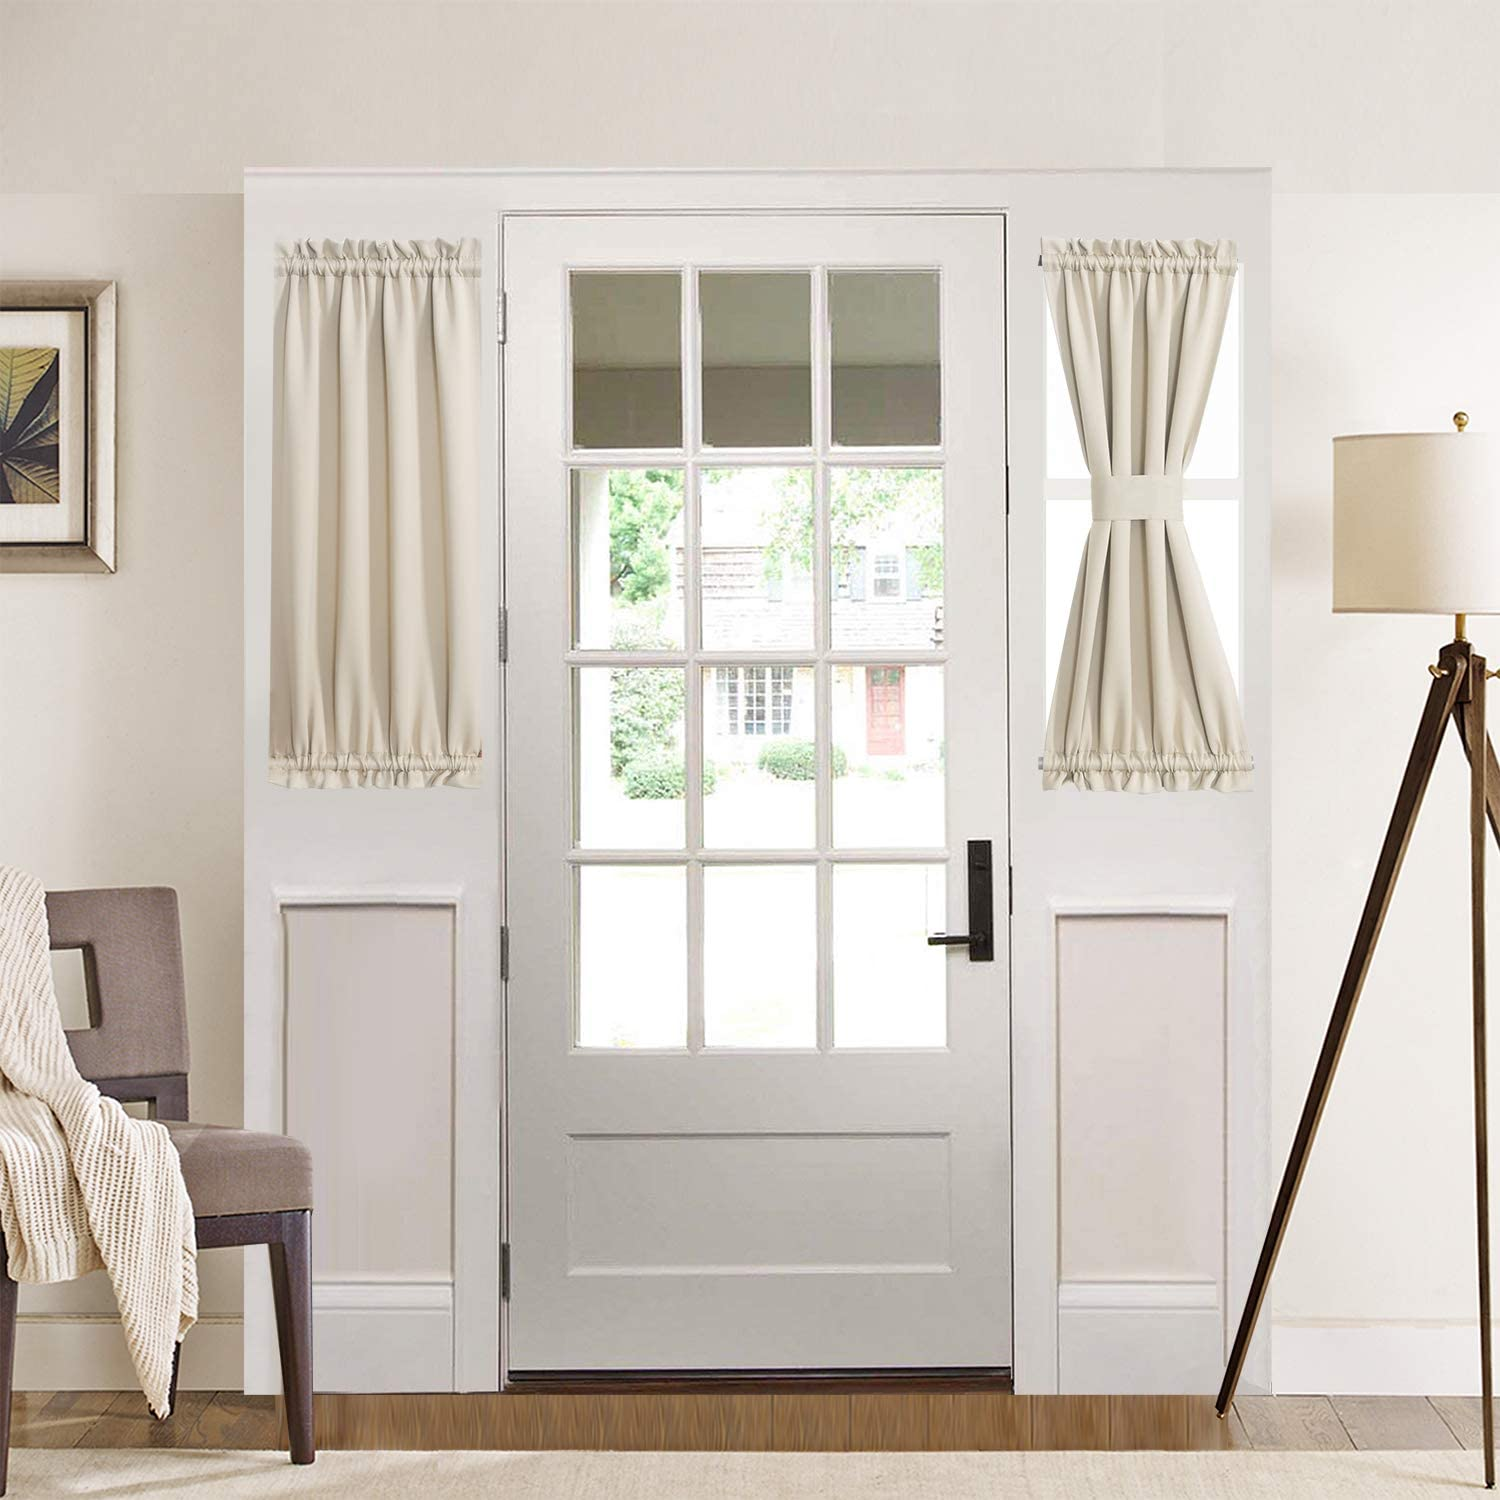 San Diego Mall Aquazolax Blackout Door Window A surprise price is realized Curtain Privacy for Curt